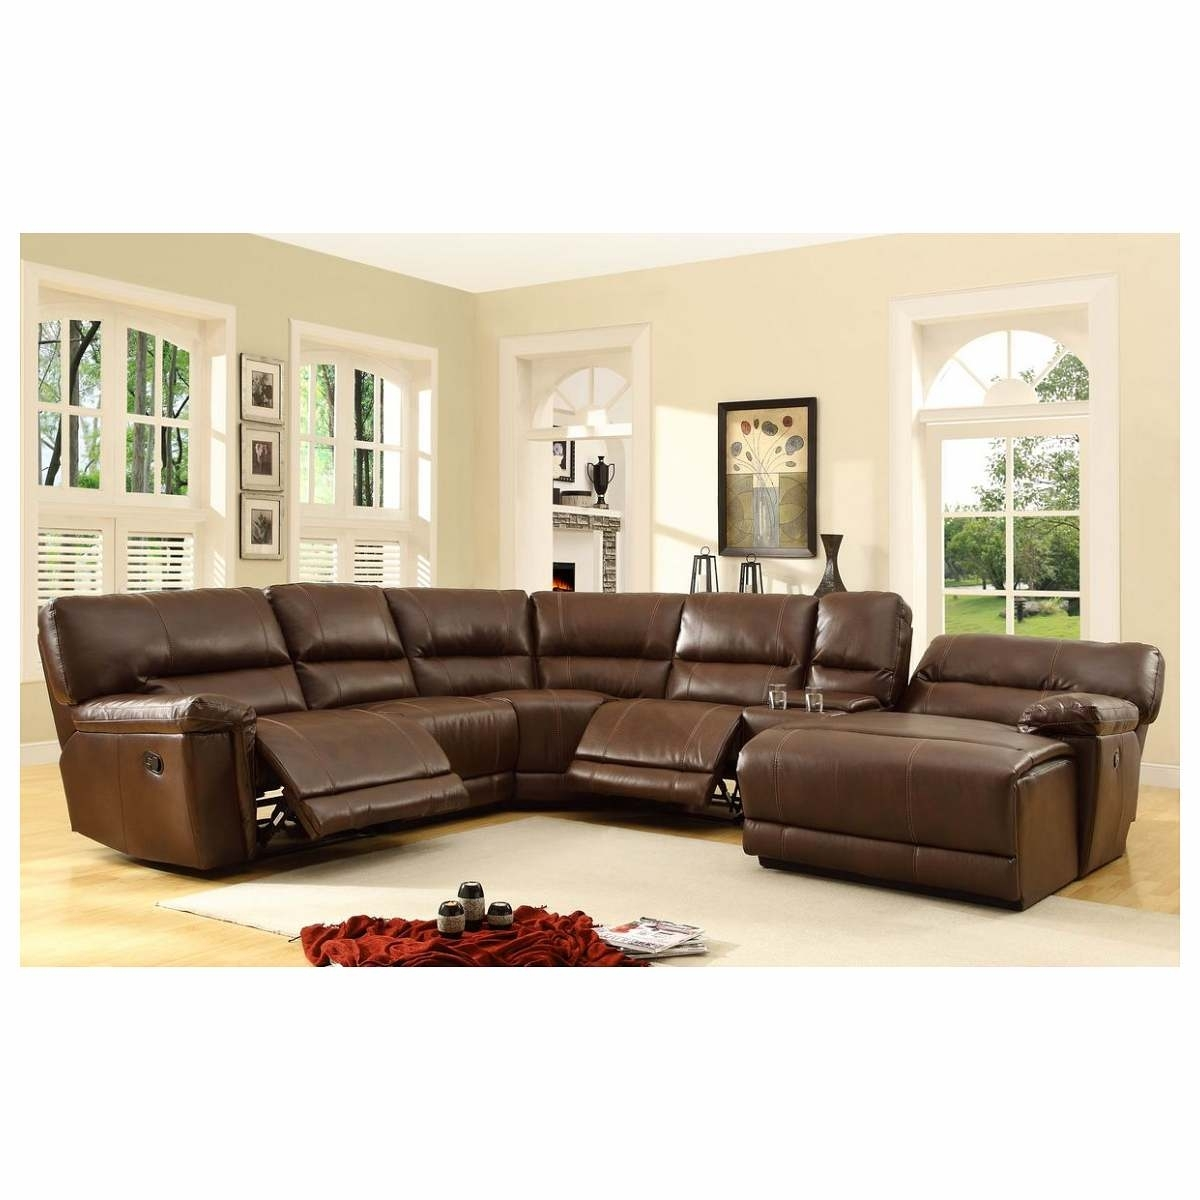 accent chairs to match brown leather sofa crate and barrel loveseat bed 10 ideas of 6 piece sectional sofas